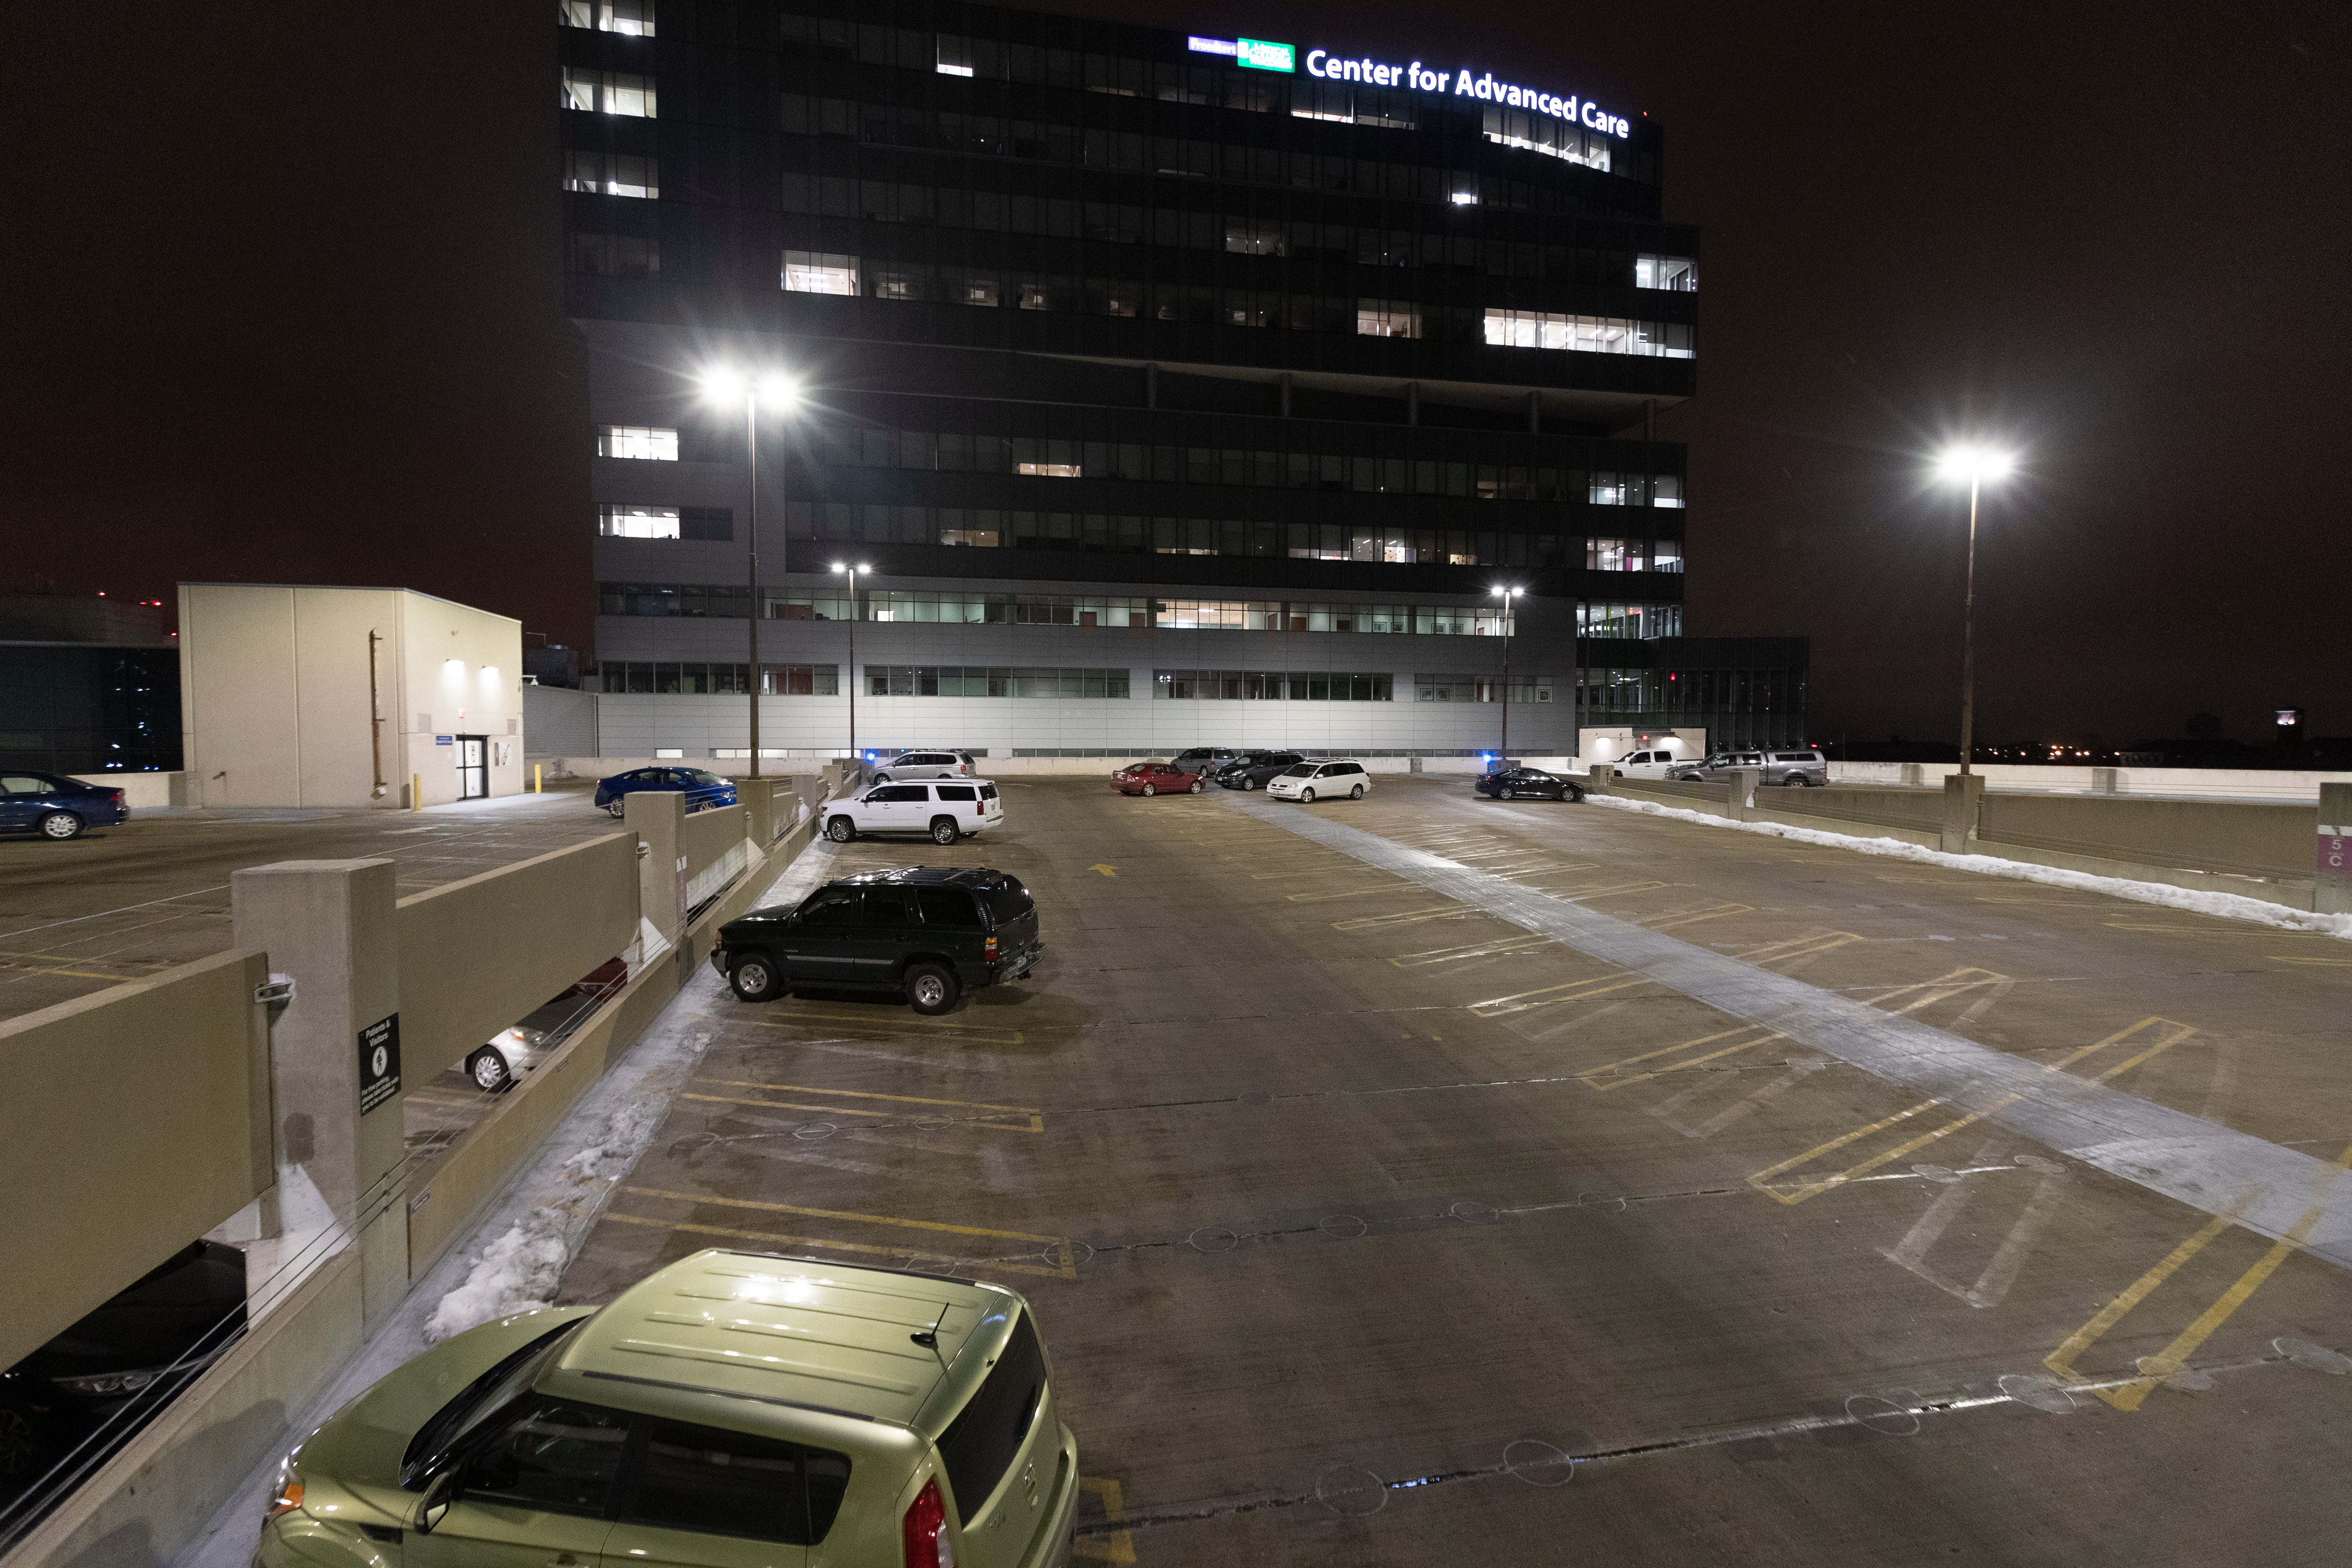 The roof top level of parking structure 1 is shown Tuesday, February 25, 2020 at  Froedtert & the Medical College of Wisconsin in Wauwatosa, Wis. The Milwaukee Journal Sentinel enlisted the aid of an architectural security consultant to evaluate parking ramps at five Milwaukee hospitals.MARK HOFFMAN/MILWAUKEE JOURNAL SENTINEL, Wis.